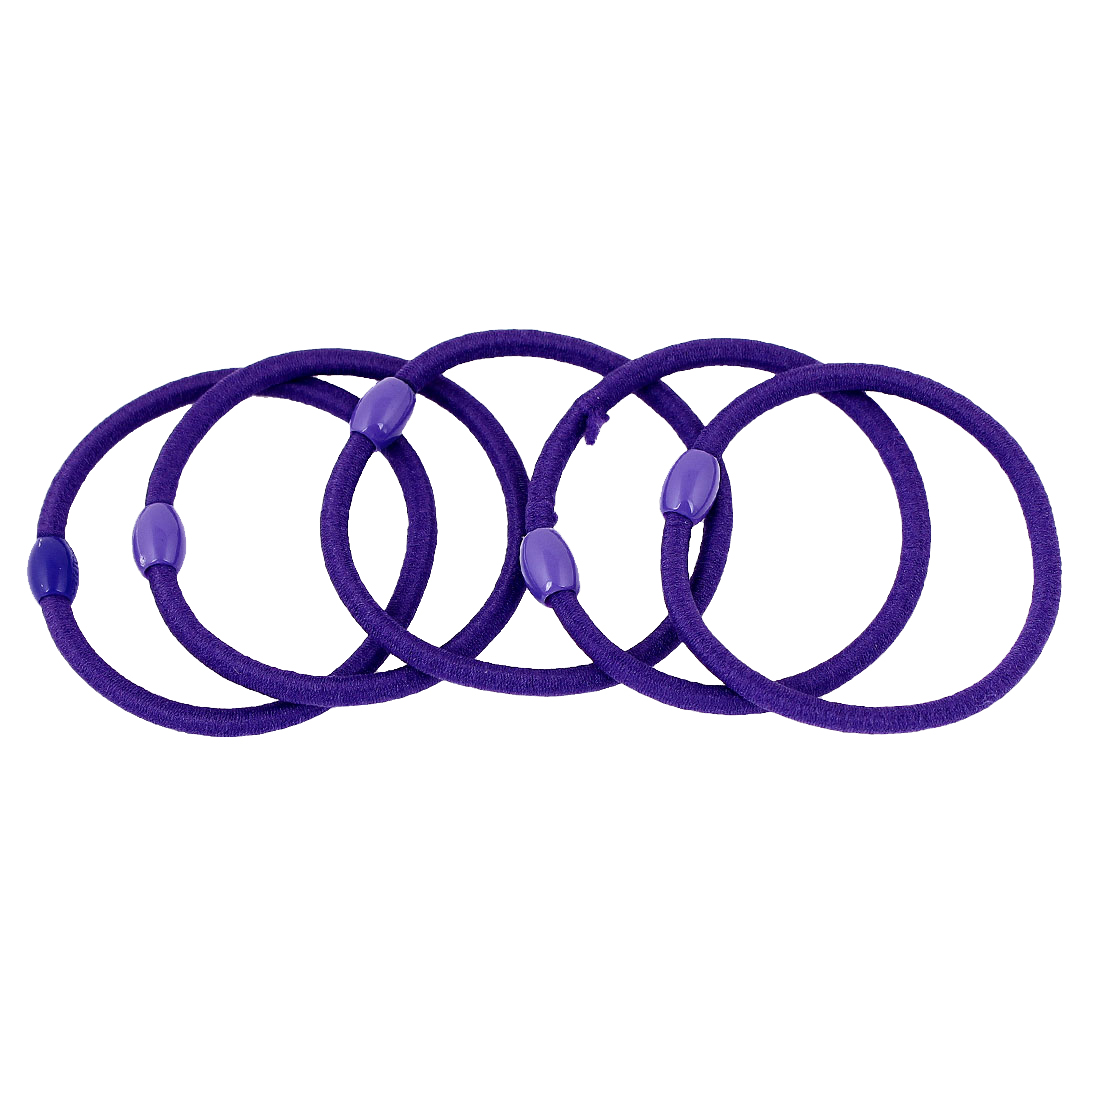 5 Pcs Purple Oval Beads Ponytail Holders Stretchy Hair Tie